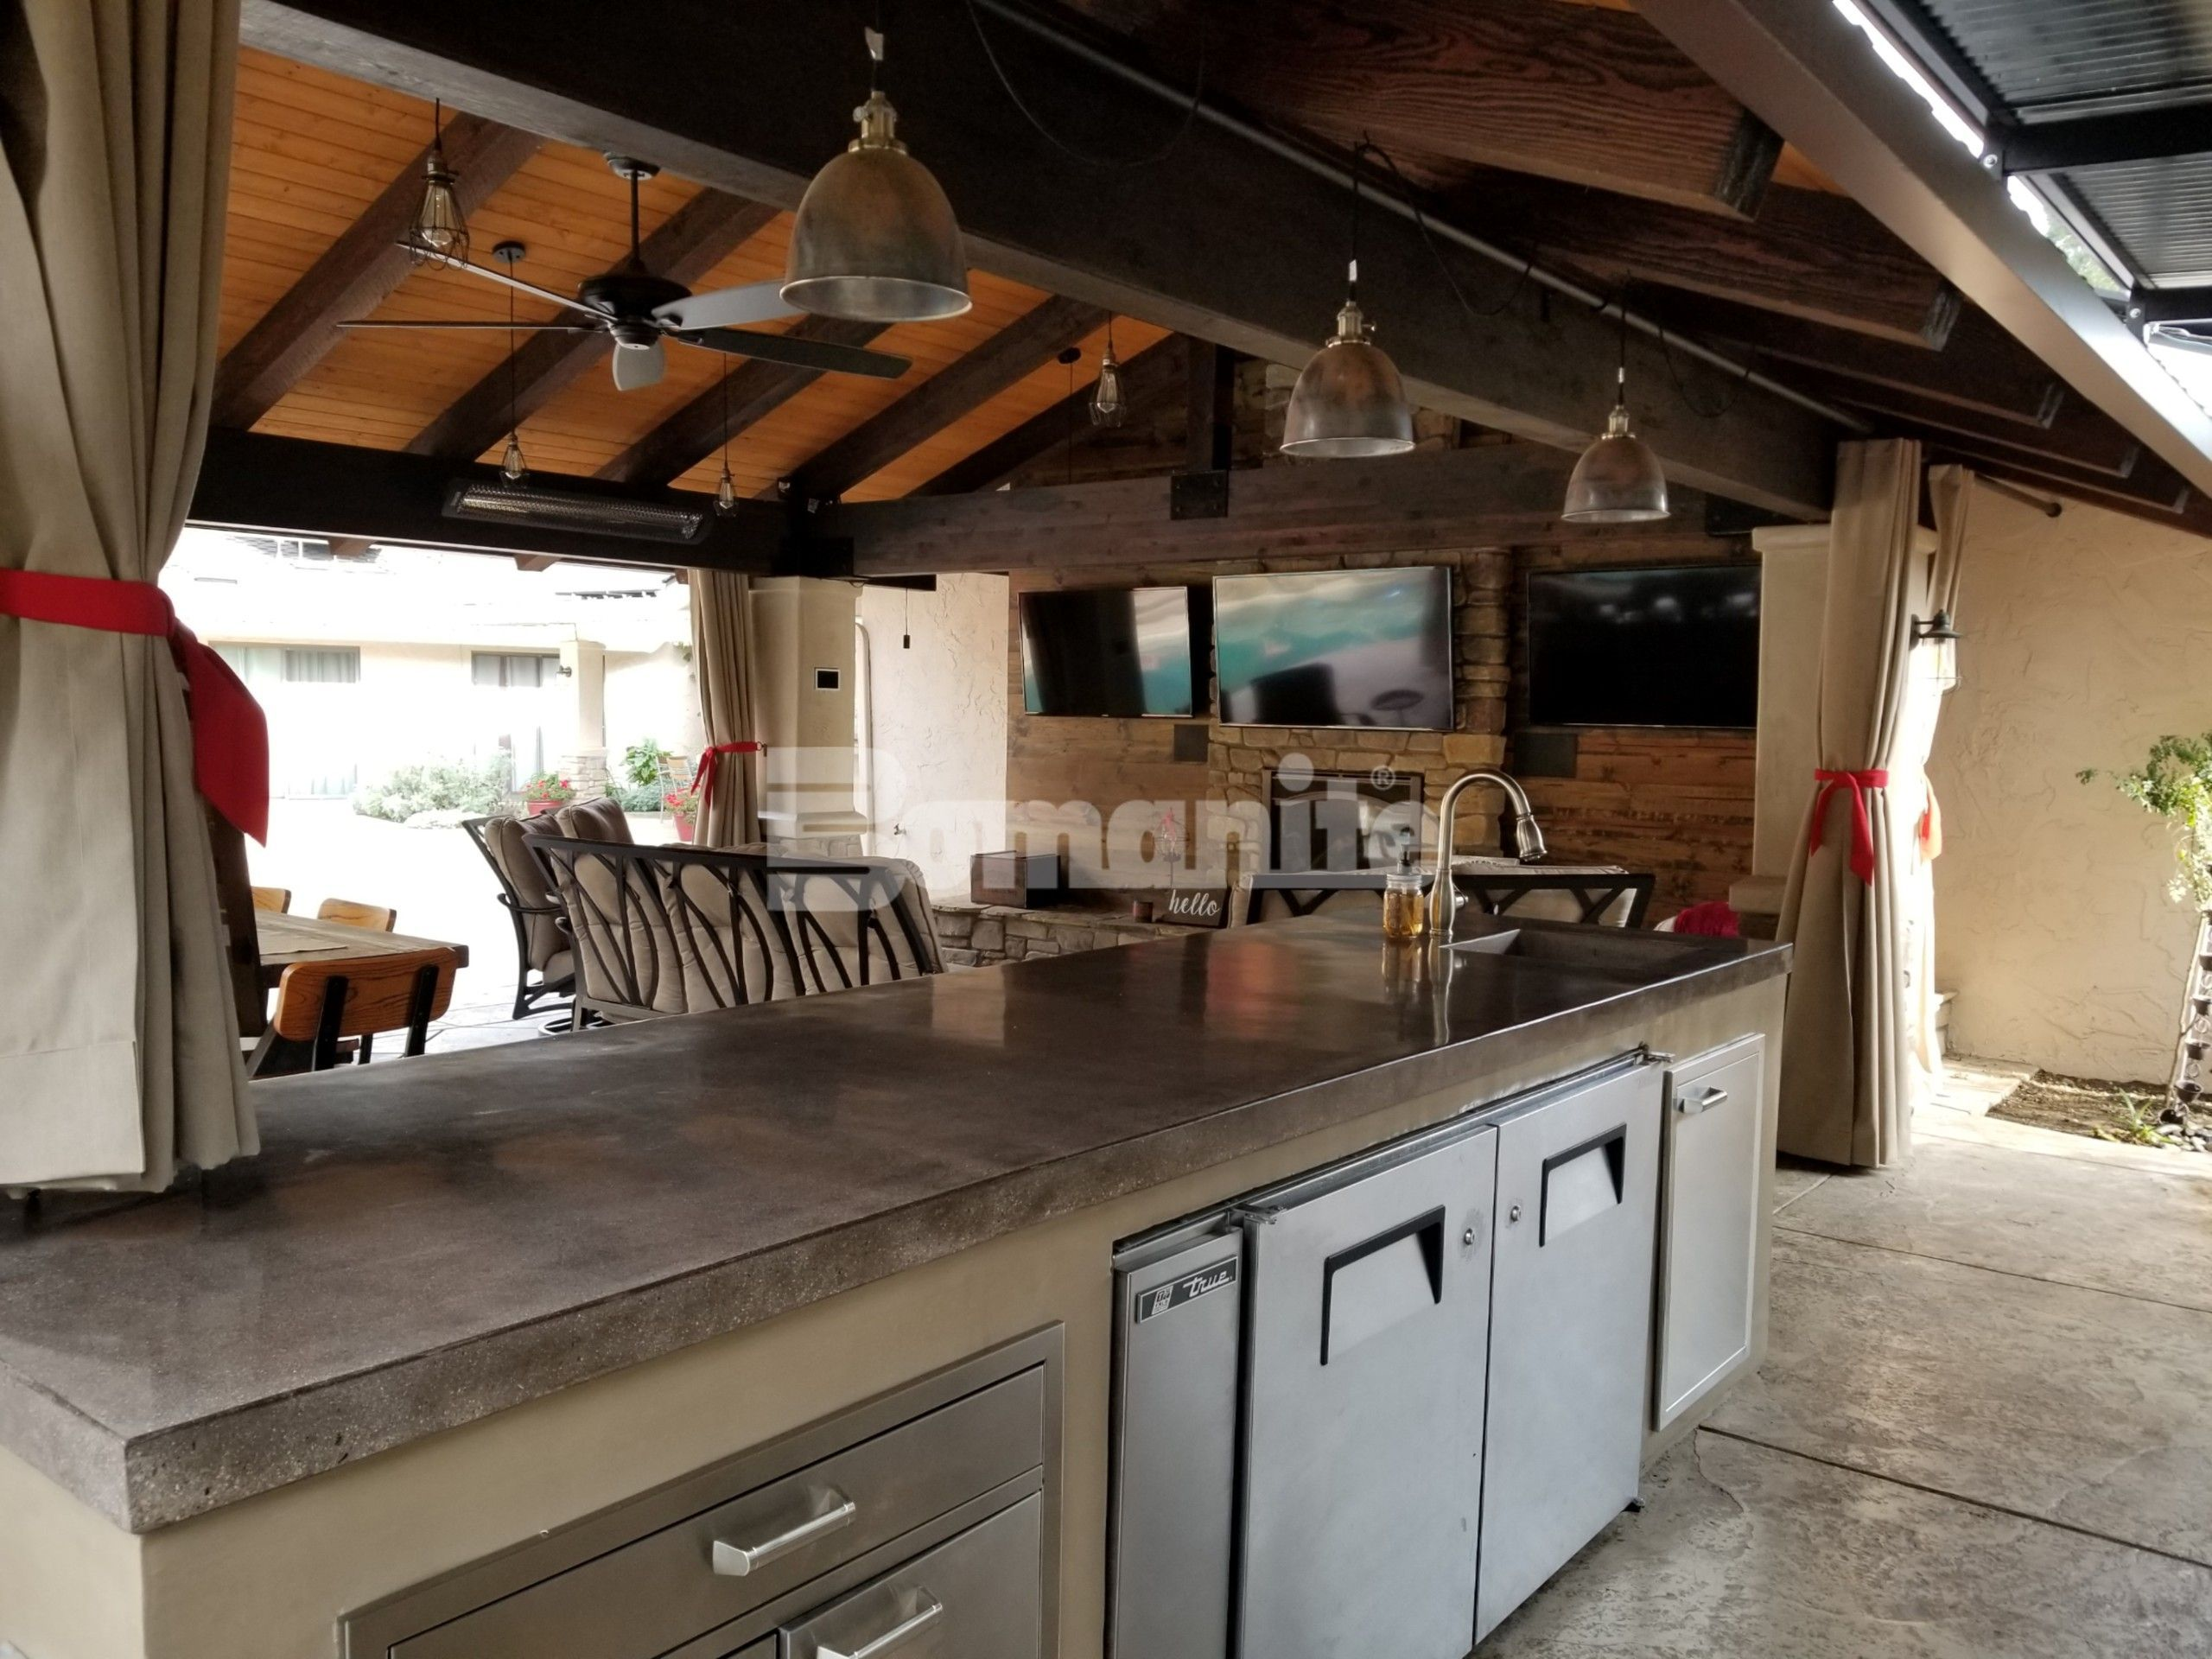 Cabana at a private residence featuring a Bomanite Custom Polished decorative concrete countertop and flooring using the Bomanite Antico Process in Fresno, CA, installed by Heritage Bomanite.